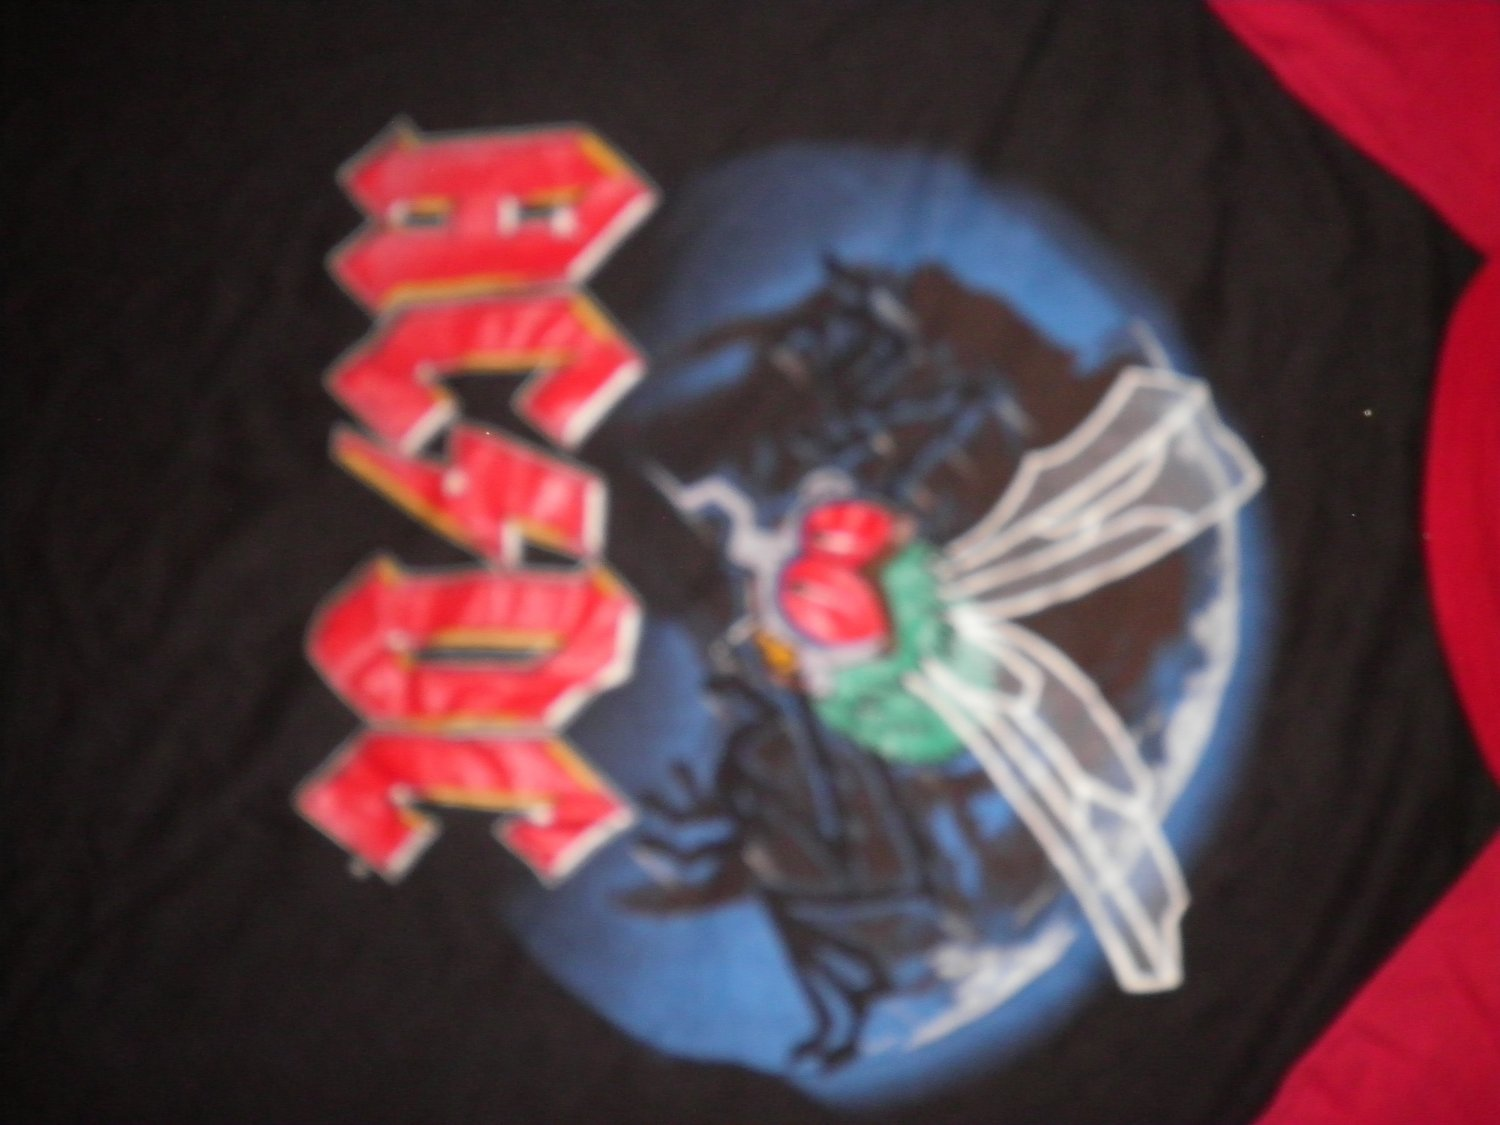 AC/DC TOUR SHIRT Fly On The Wall 1985 acdc black/red JERSEY L VINTAGE